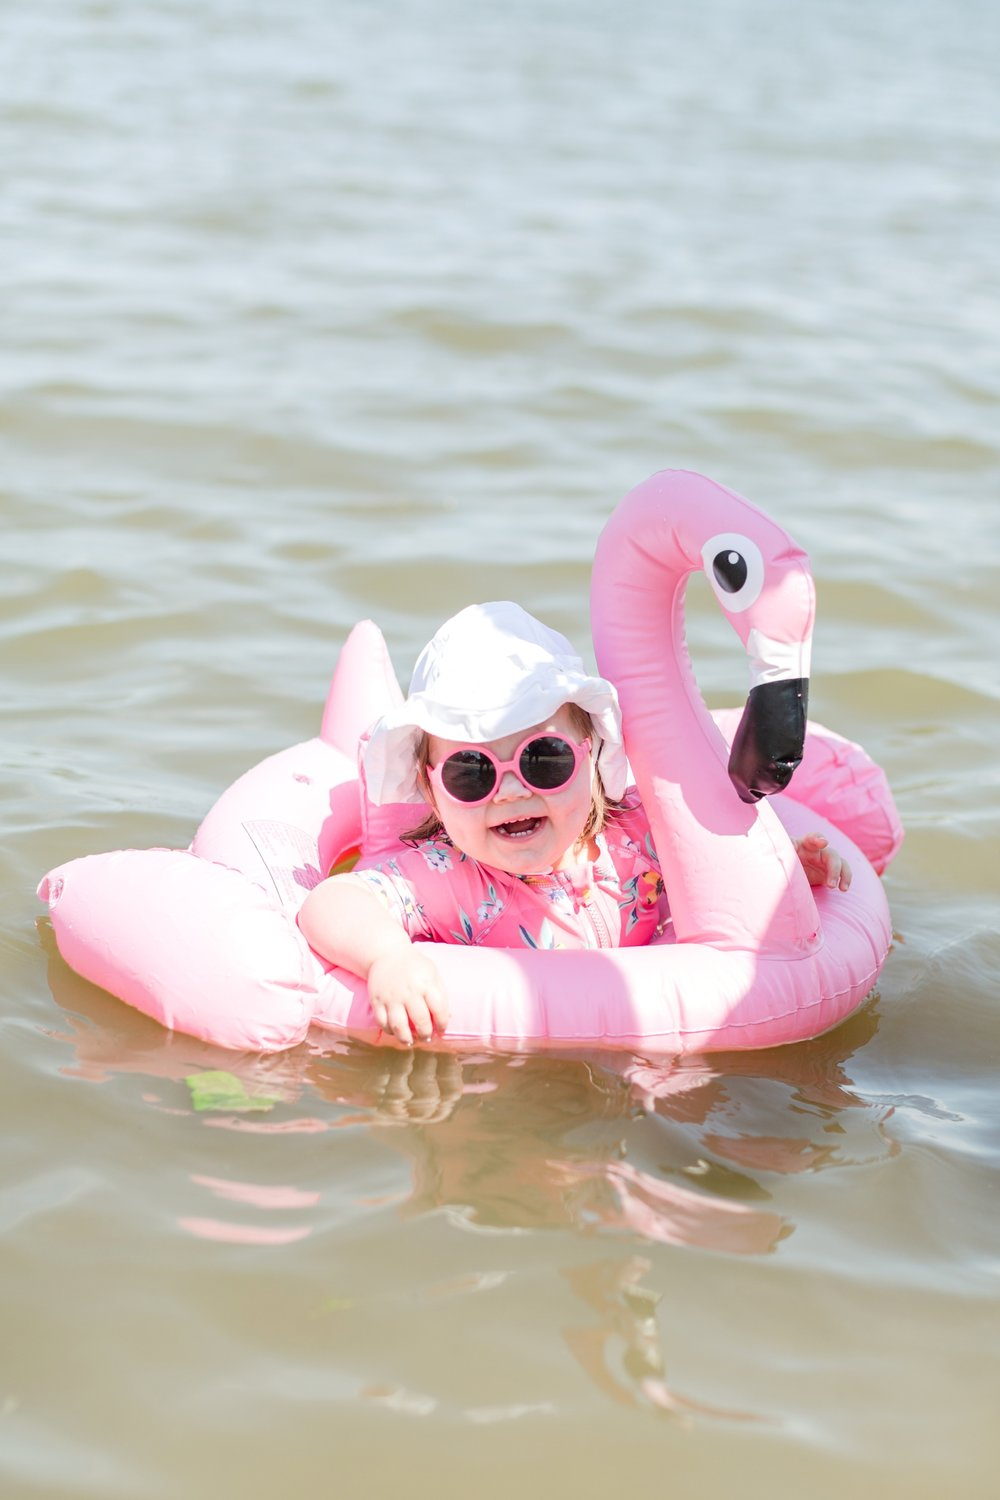 You may remember pics of Pay in the flamingo from   our Rehoboth trip last summer  ! She loves this floatie!